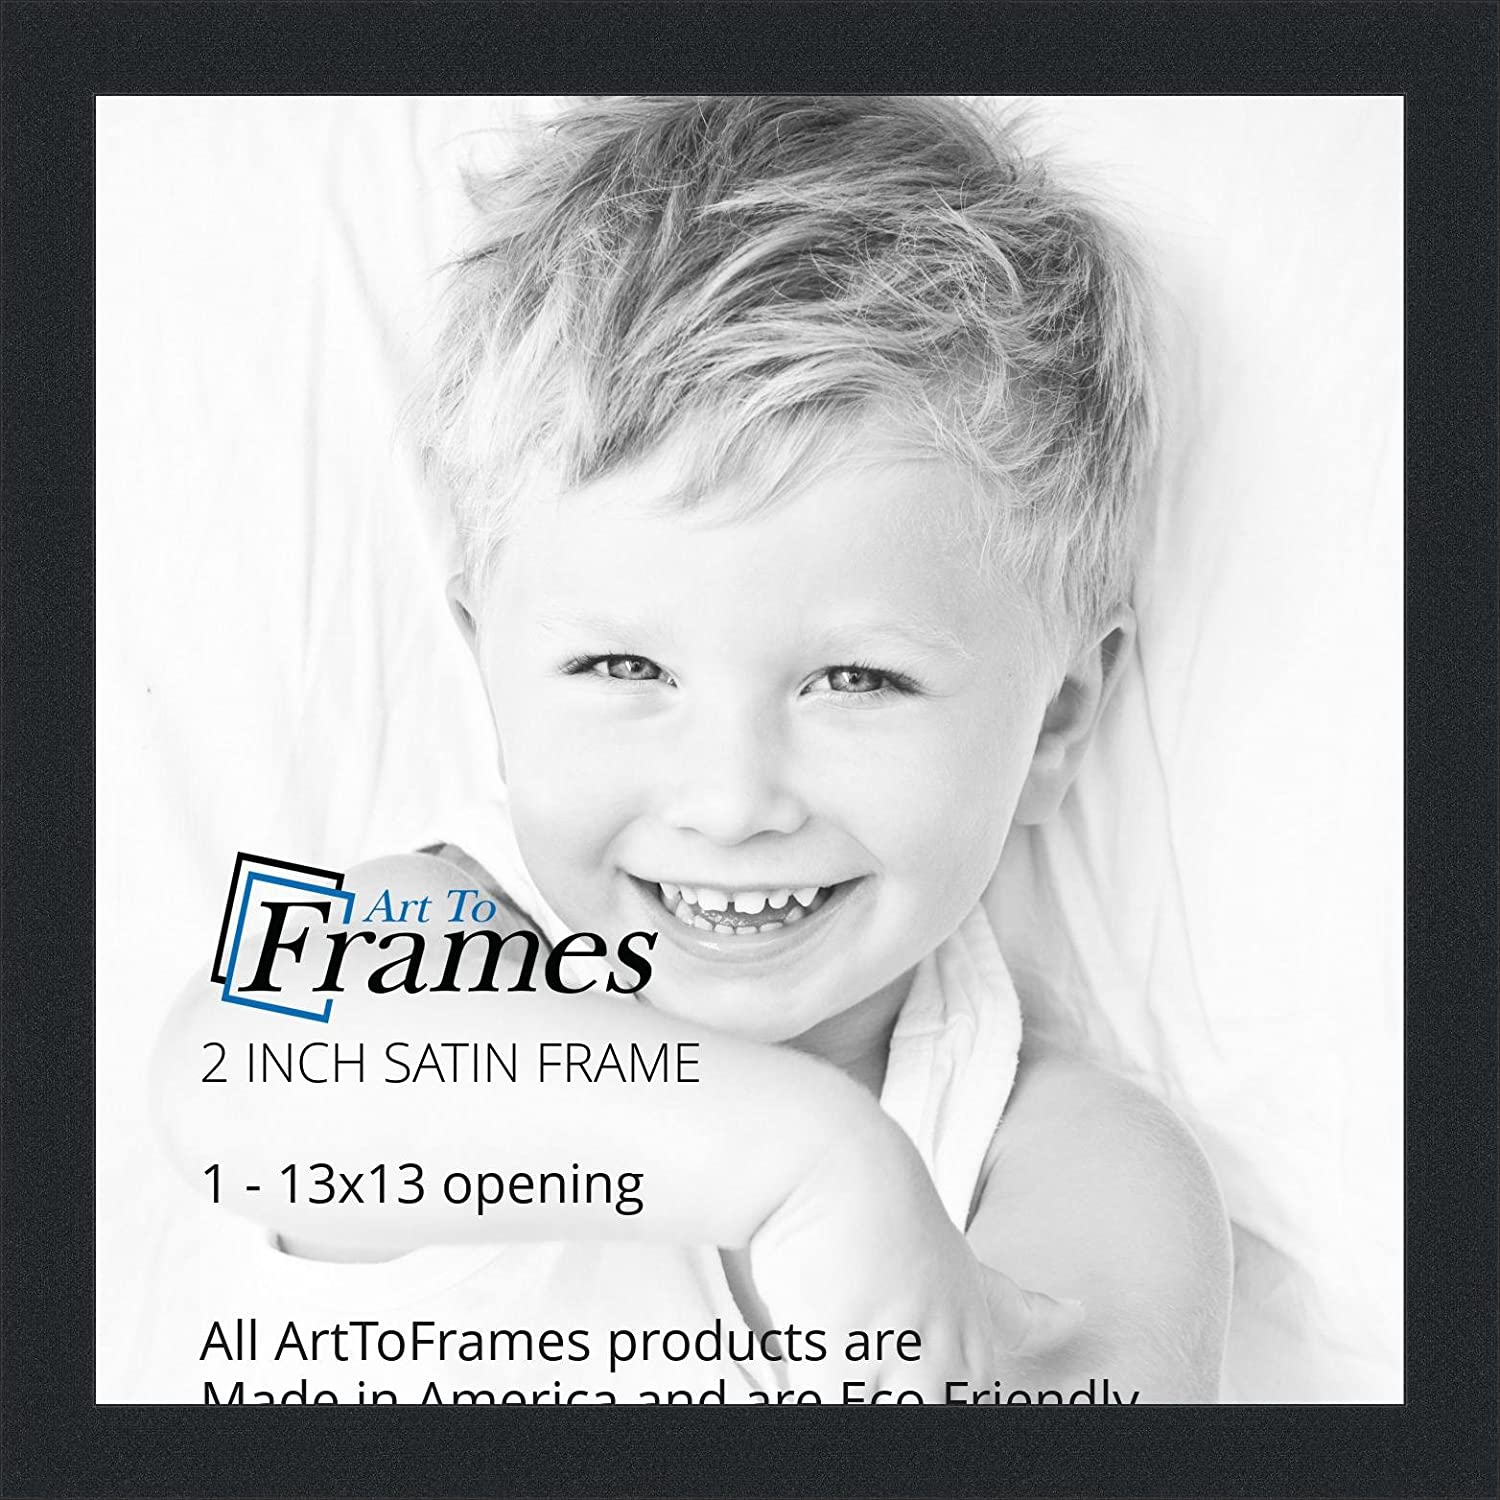 Amazon.com - ArtToFrames 13x13 inch Satin Black Picture Frame ...